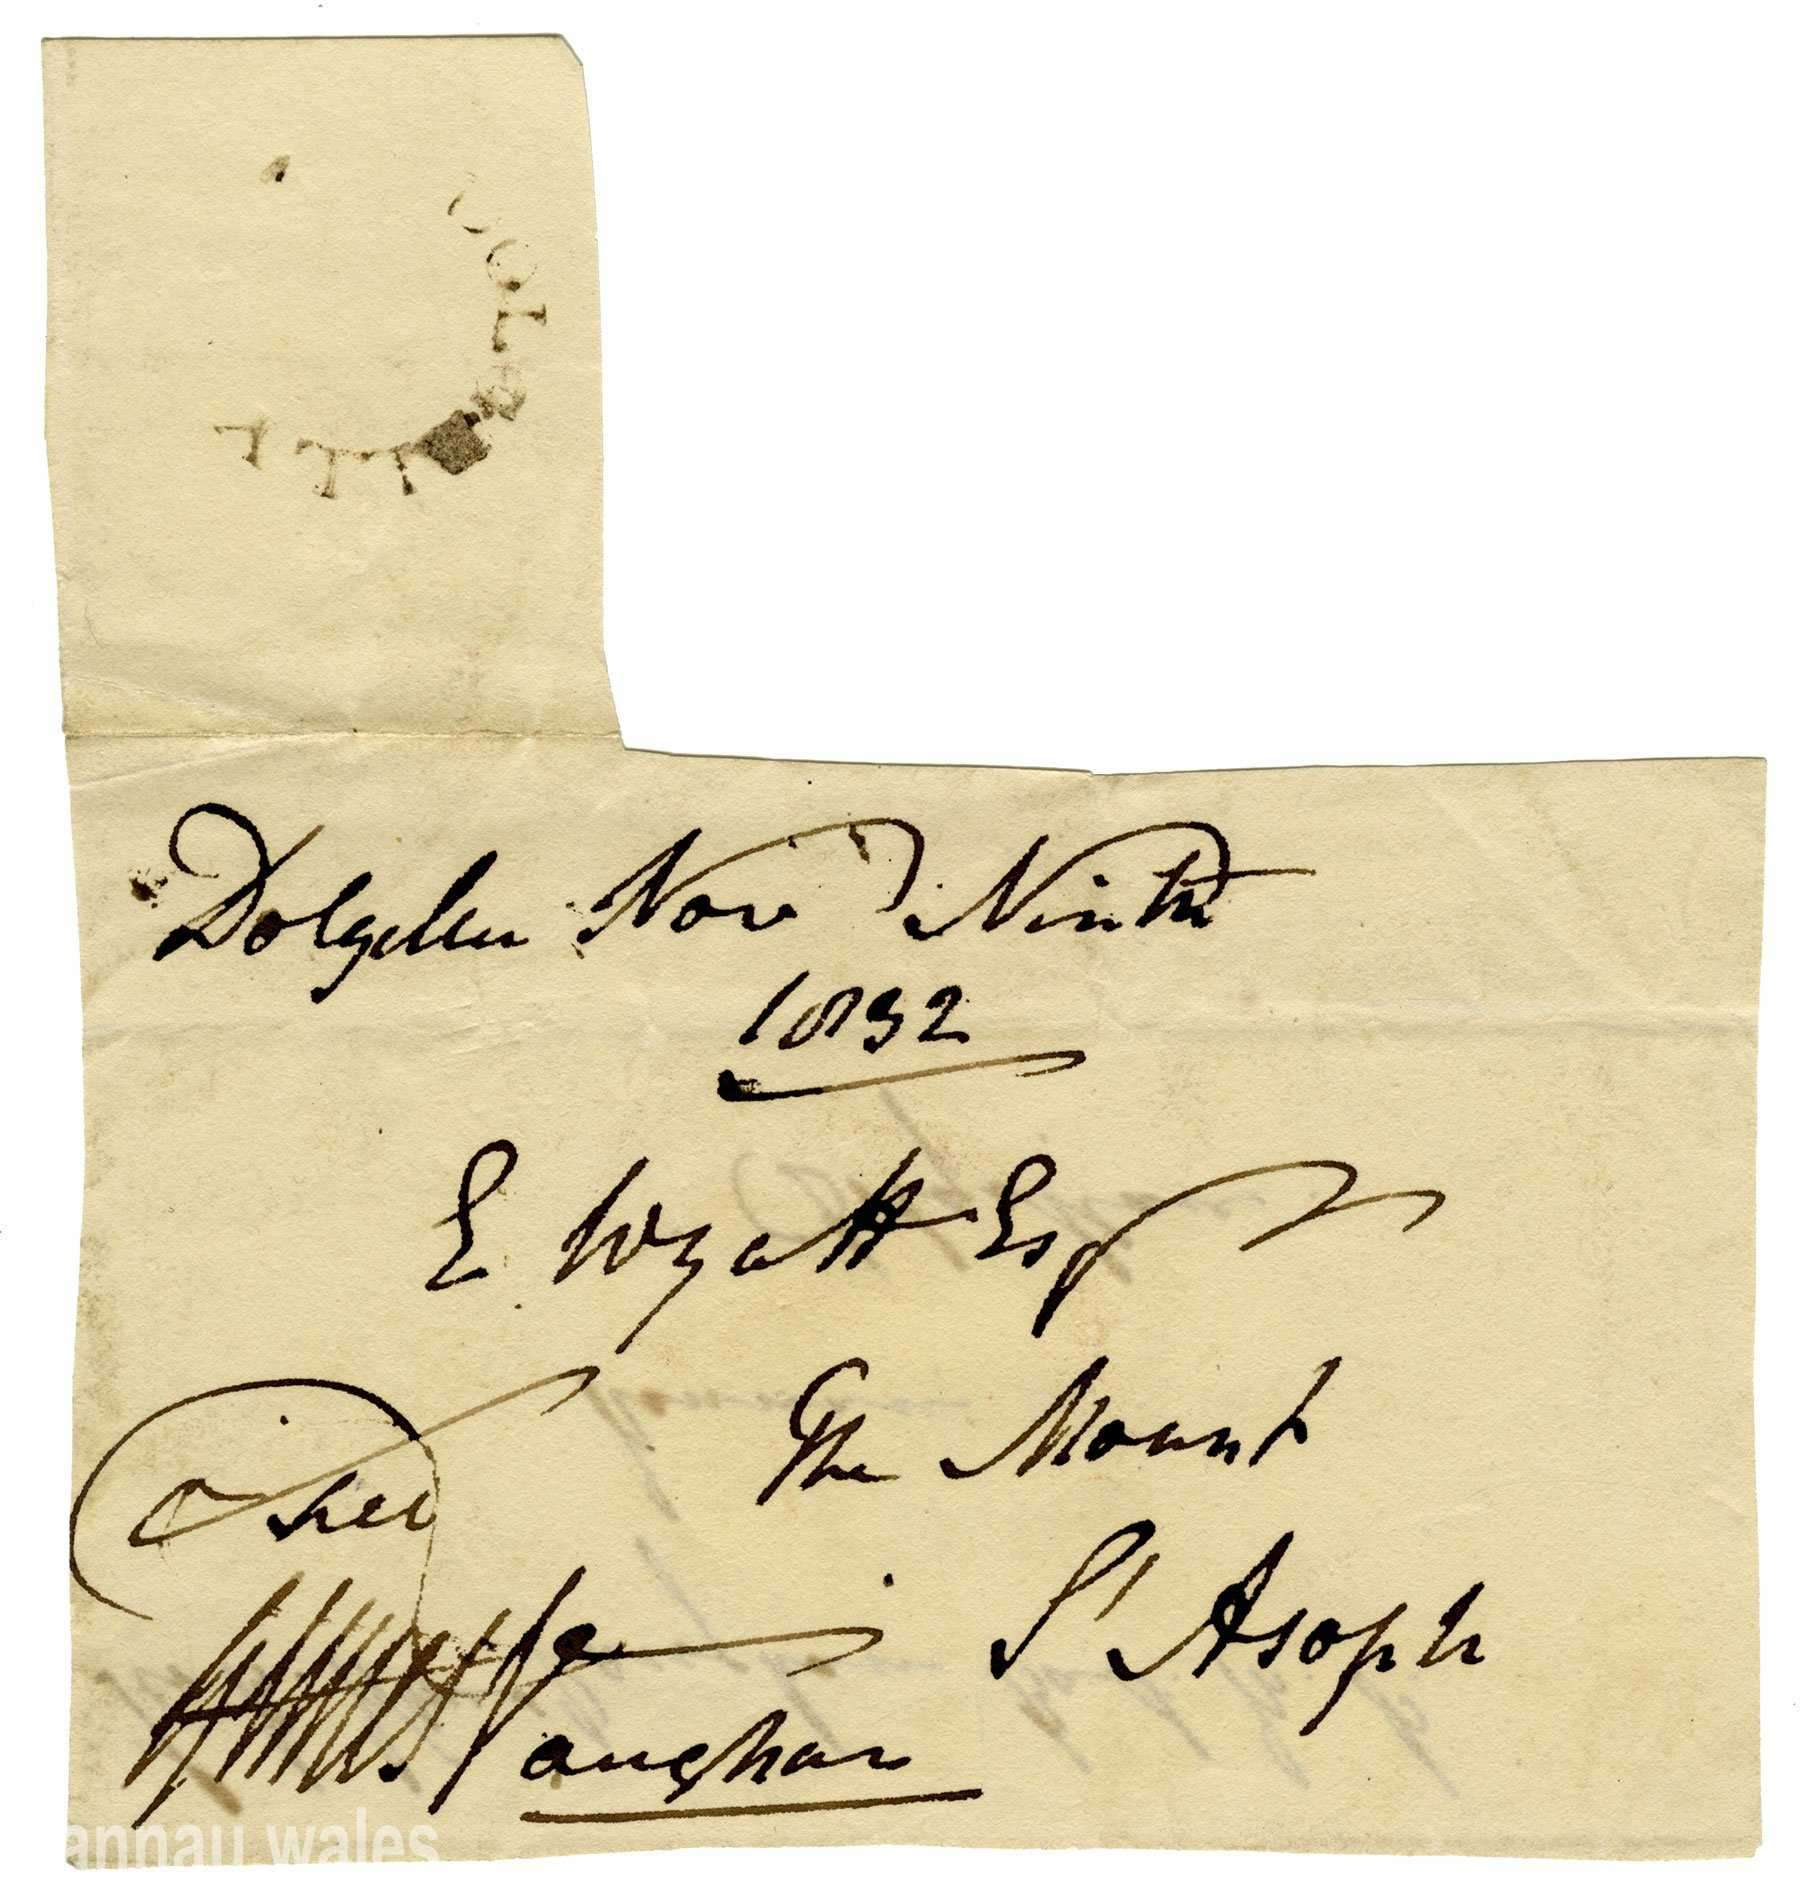 A Signed Envelope by Robert Williams Vaughan, 2nd Baronet (1768-1843). Letter dated 9th November 1832.